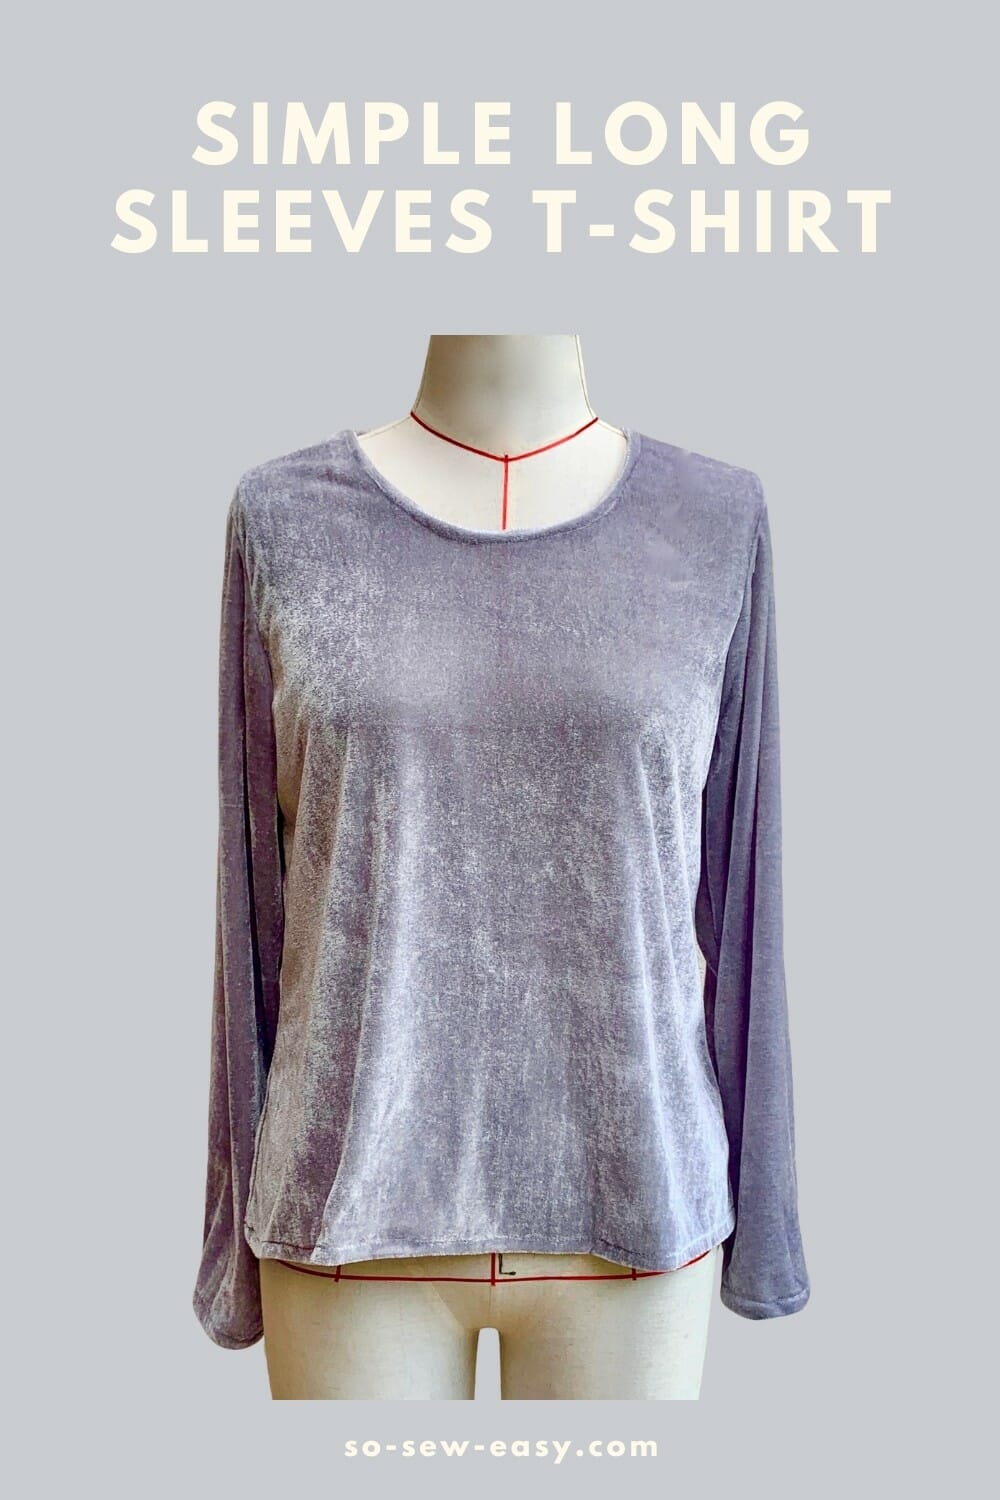 simple long sleeves t-shirt